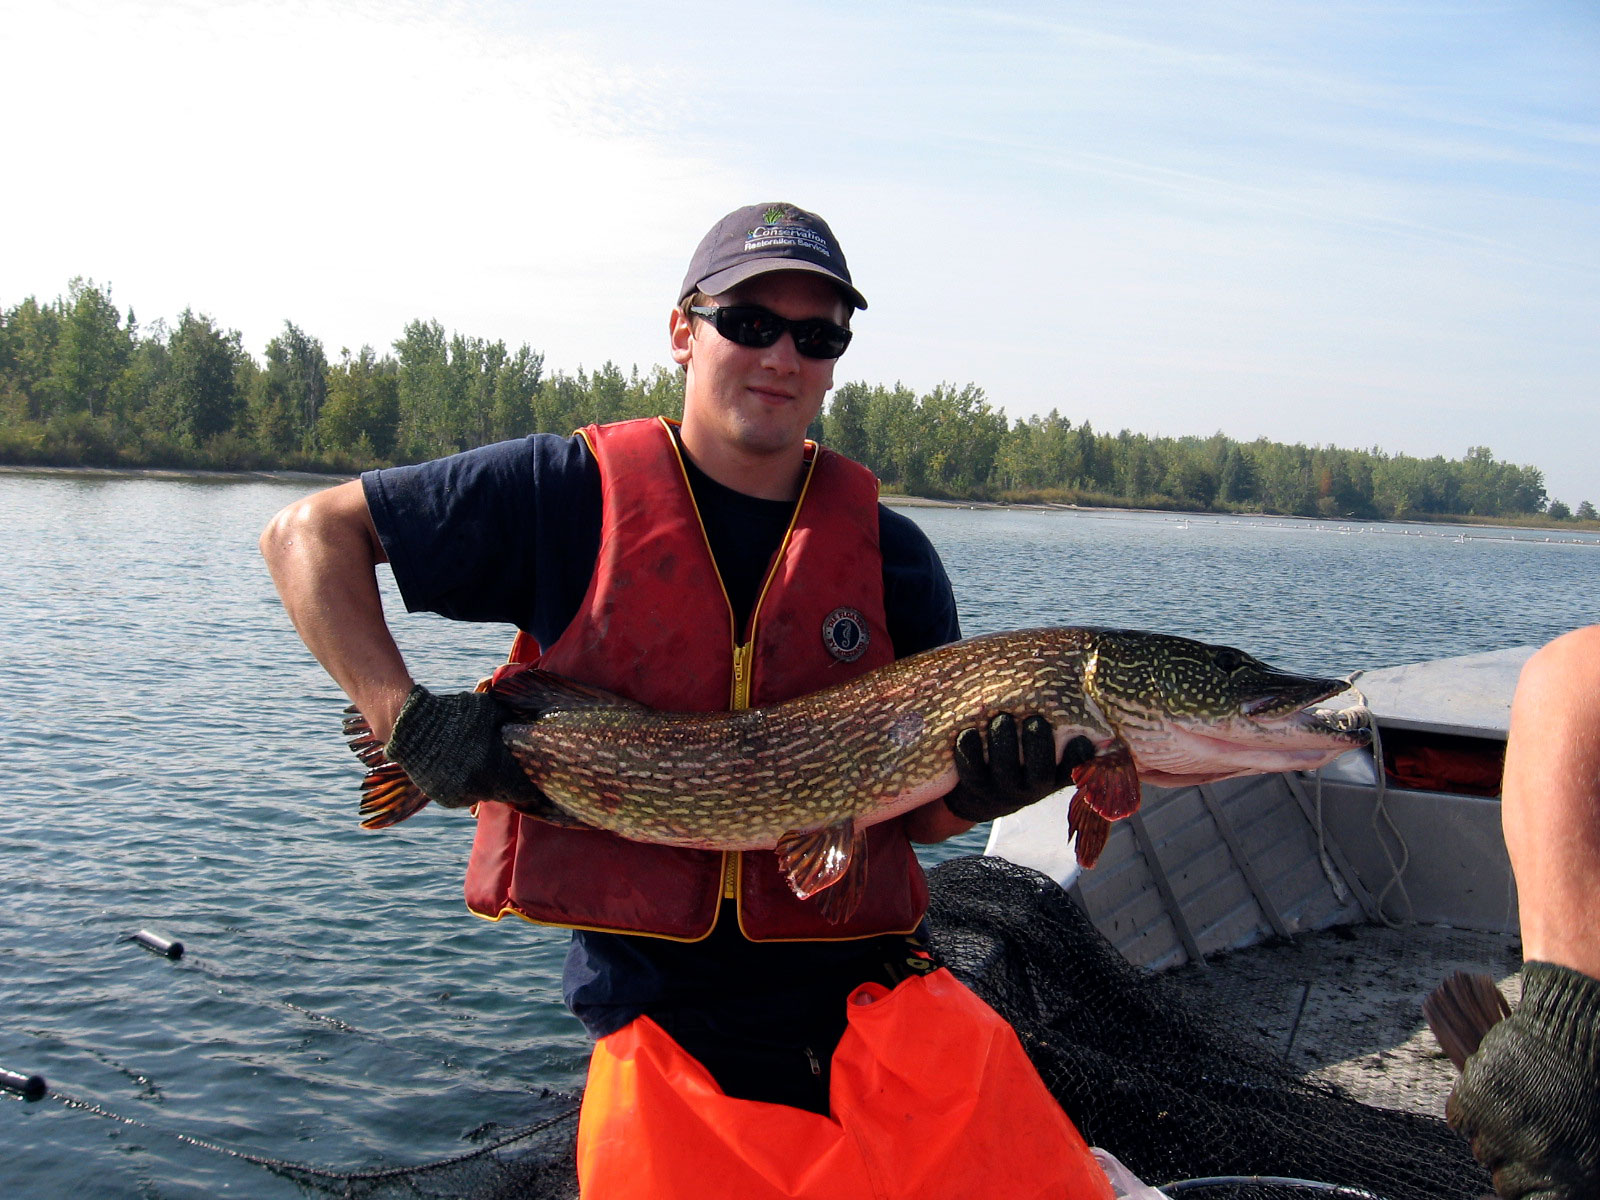 A TRCA staff person holding a large Northern Pike